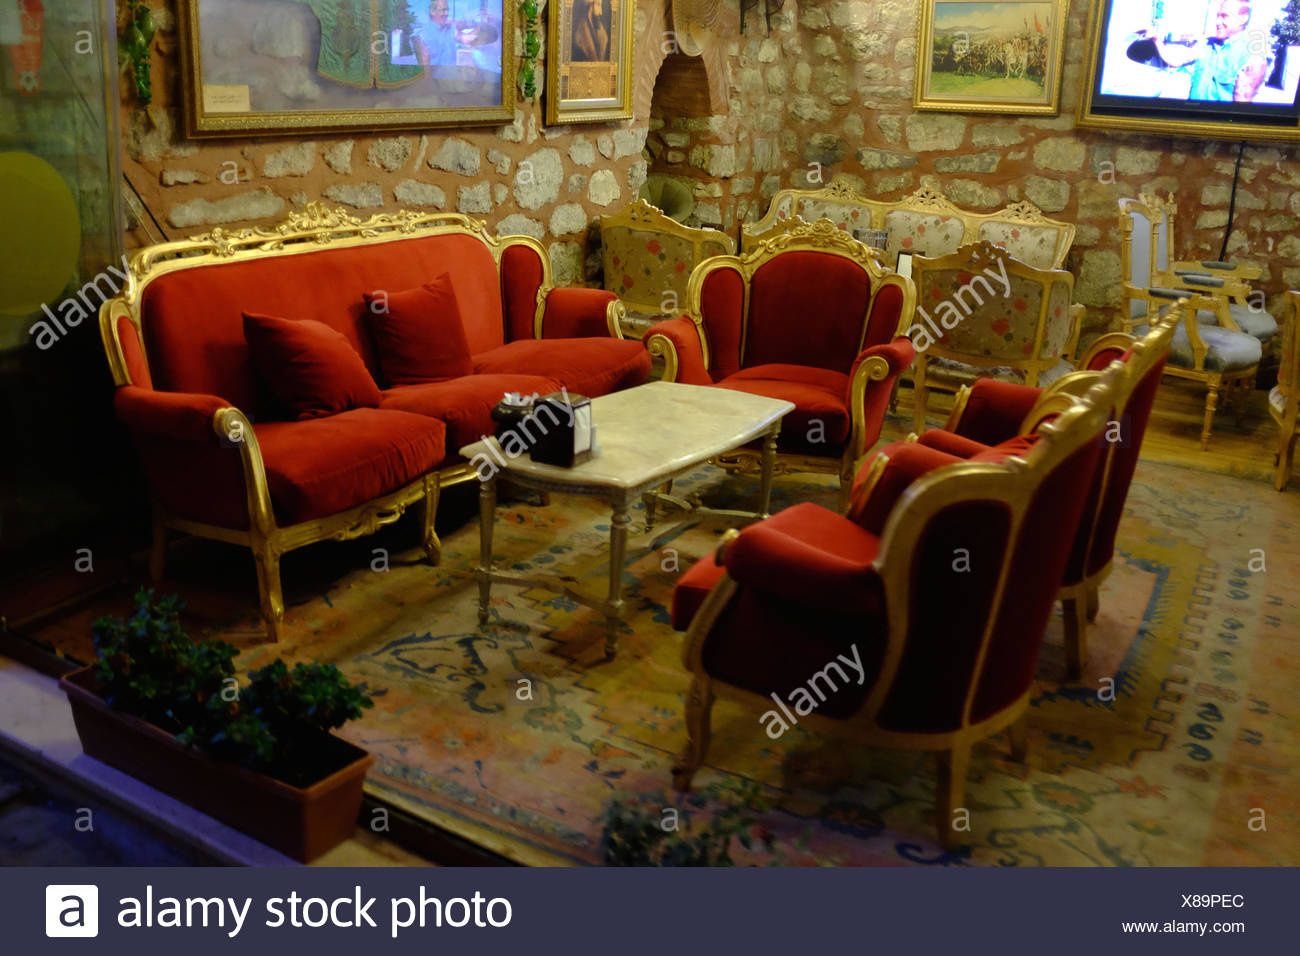 a red sofa and armchairs welcome guests at a coffeeshop in istanbul